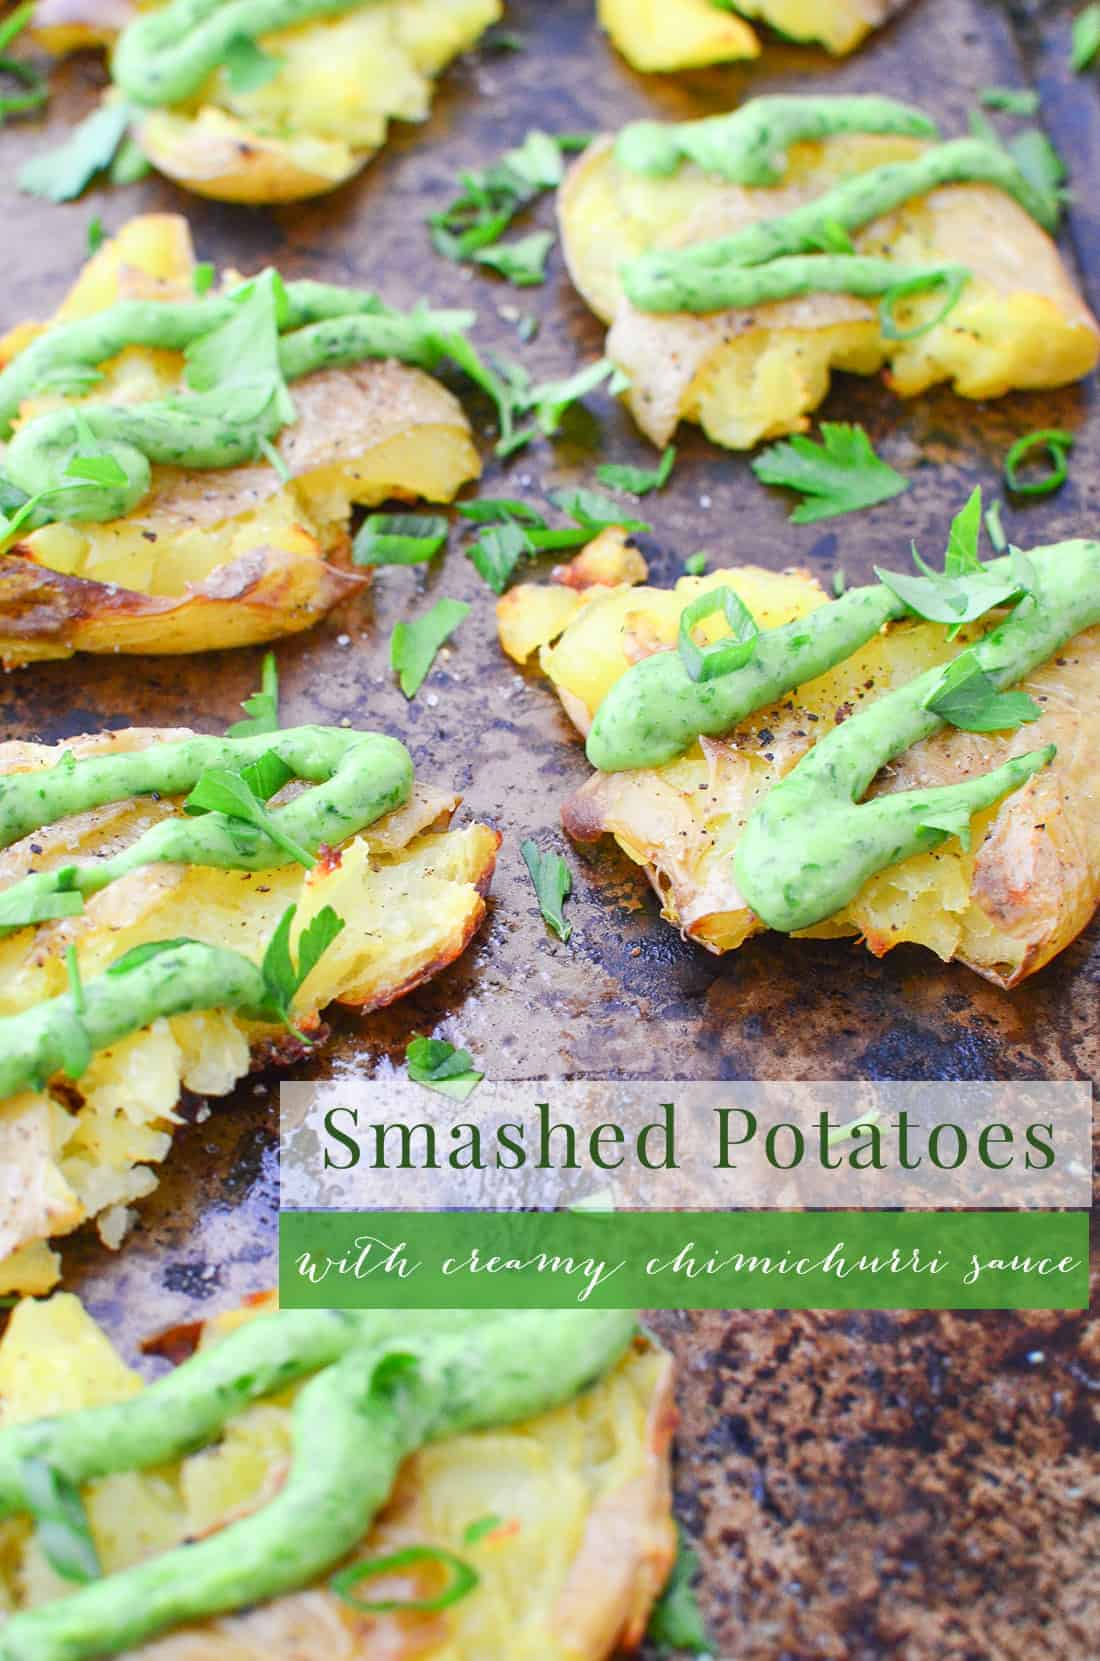 Crispy Smashed Potatoes with Creamy Chimichurri Sauce! You'll want to bring this to your next cookout or potluck! Vegan and Gluten-Free   www.delishknowledge.com